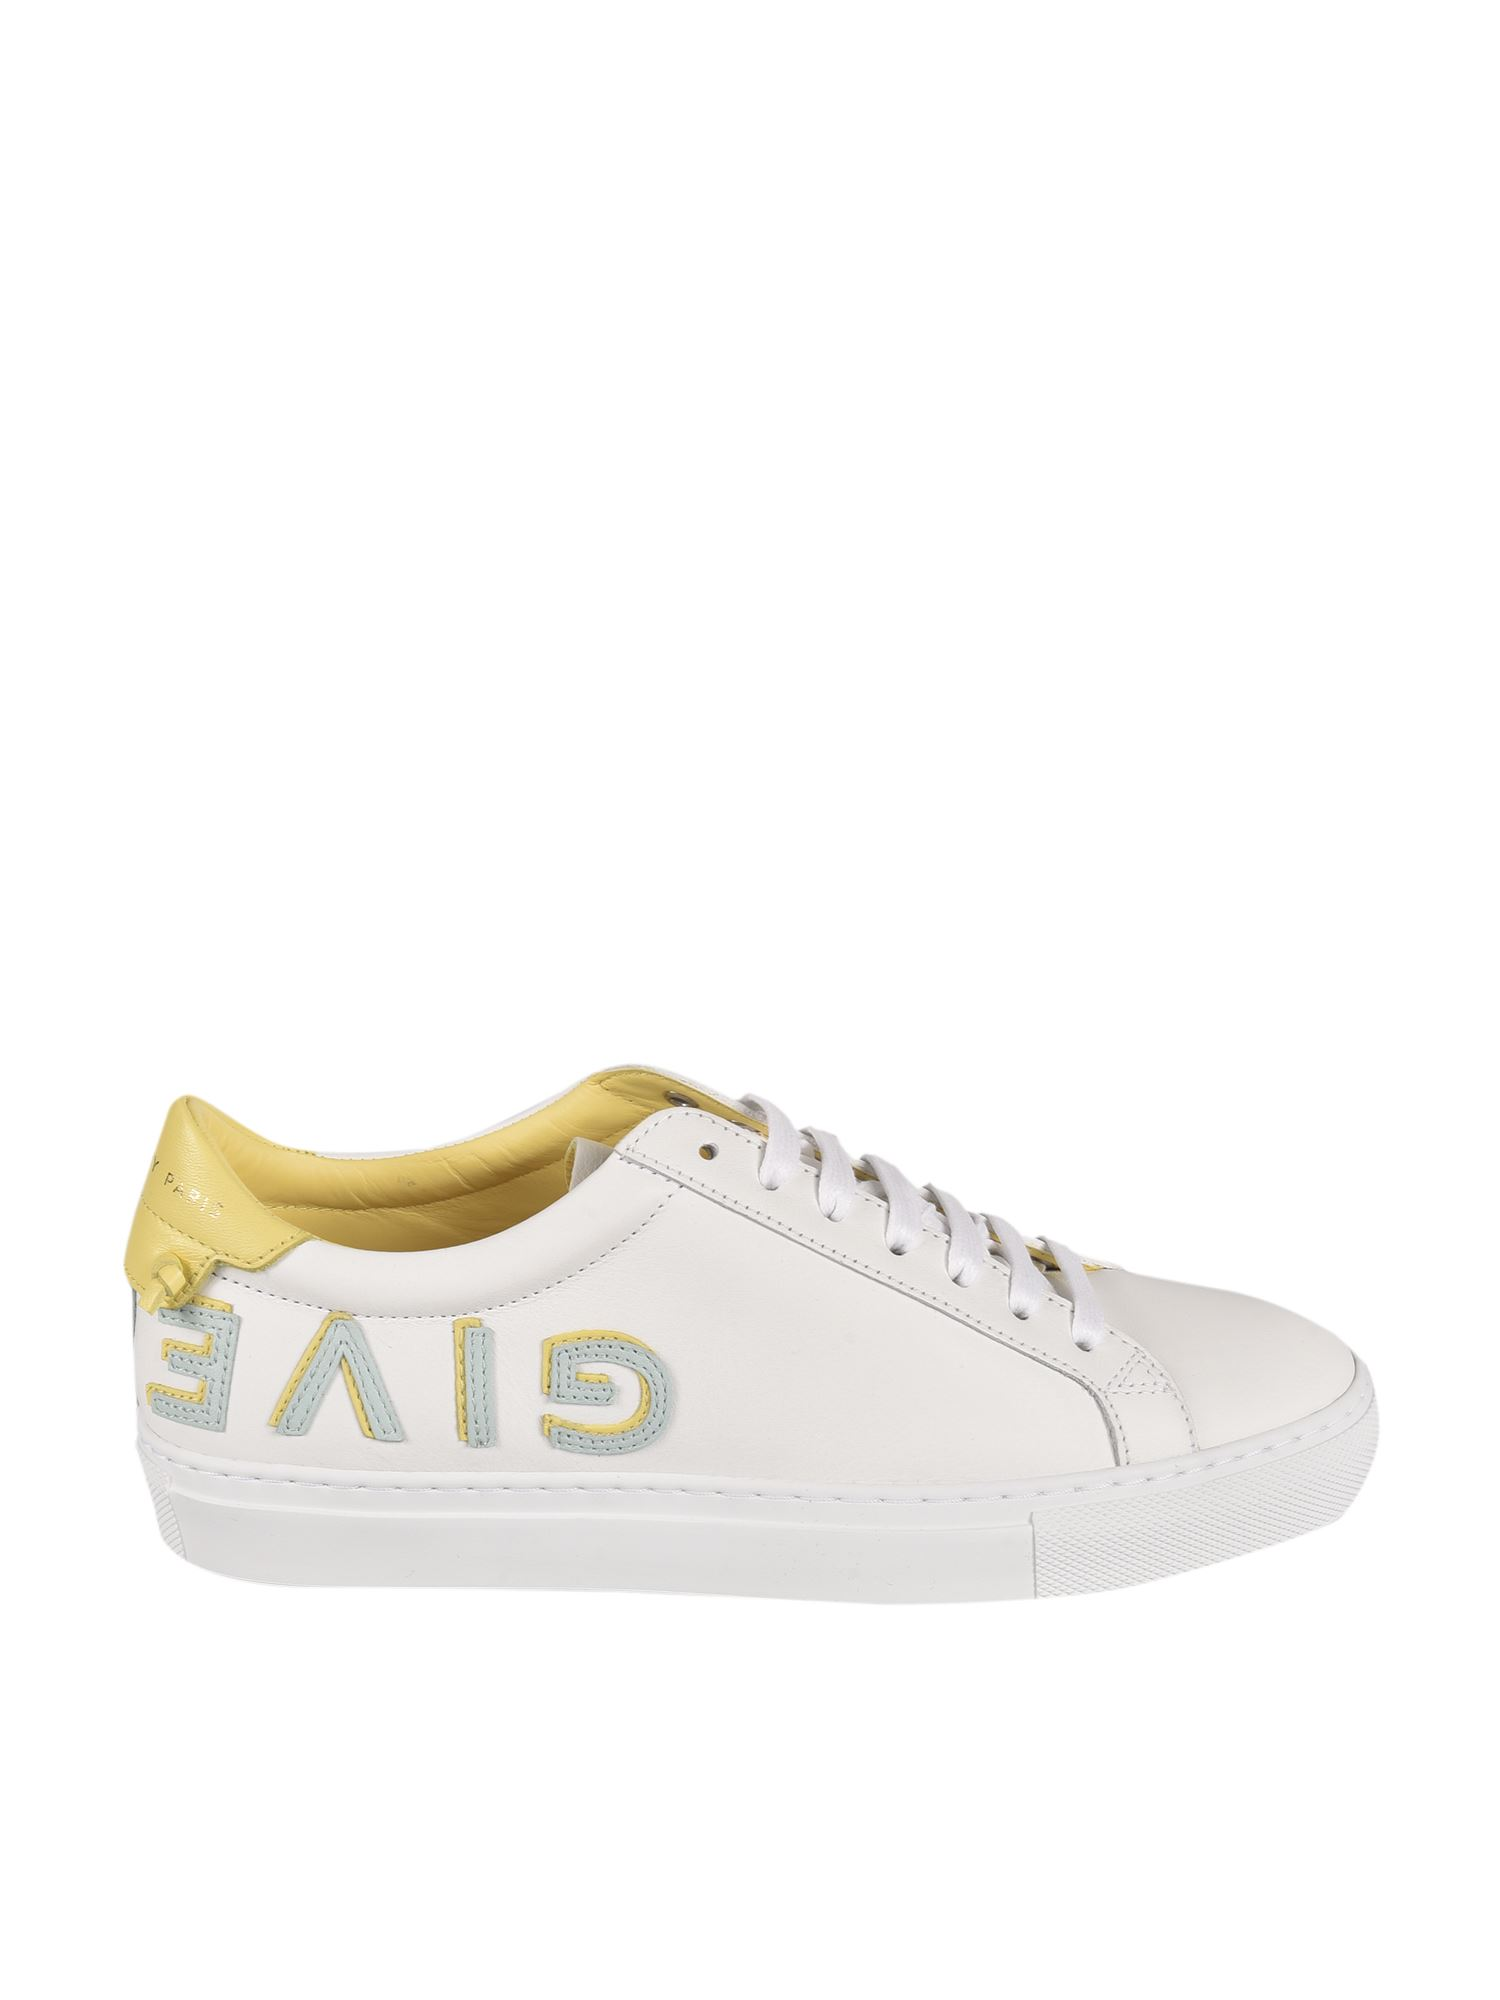 Givenchy URBAN STREET SNEAKERS IN WHITE AND YELLOW